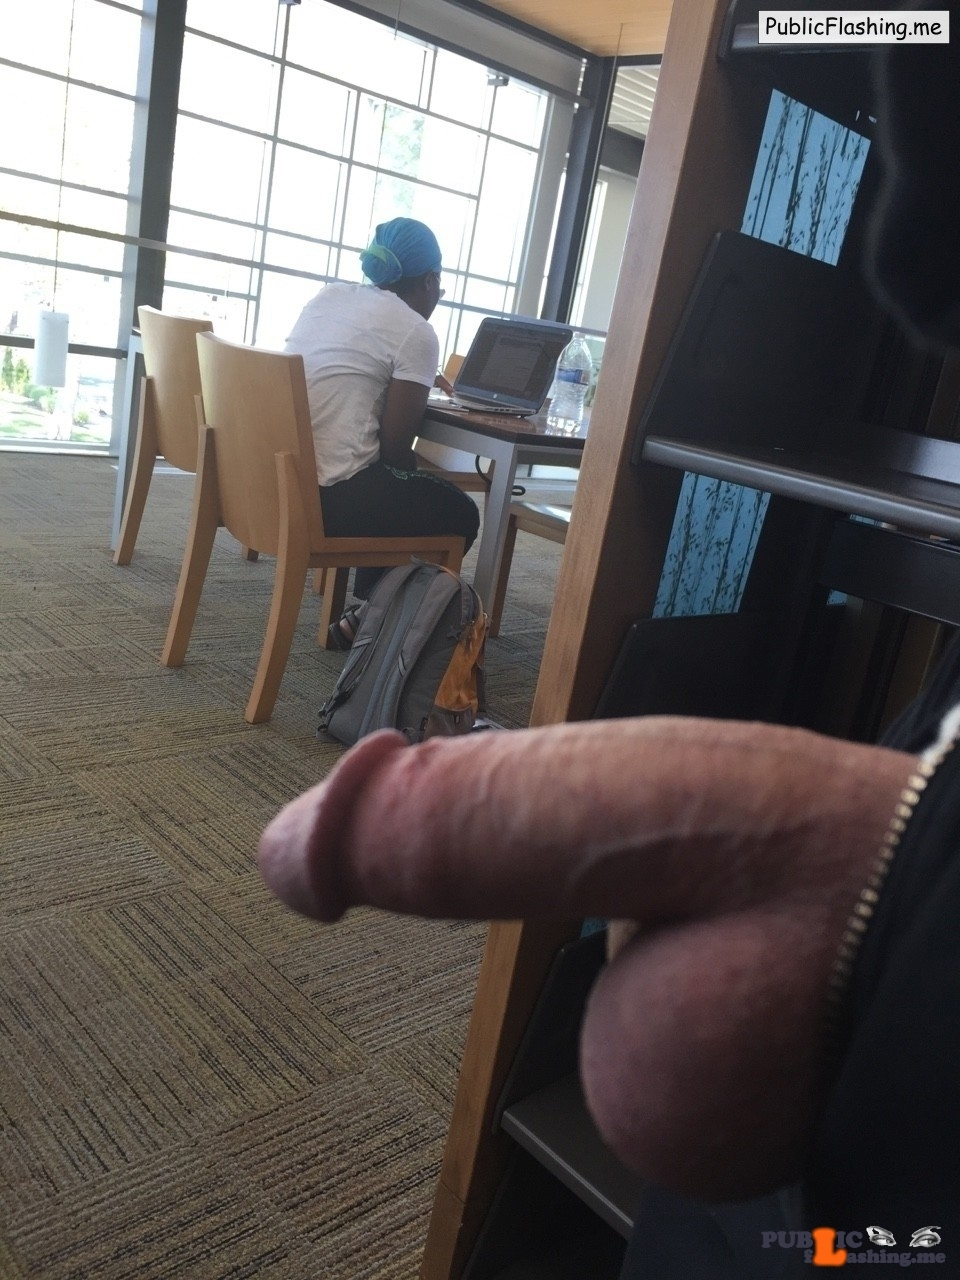 Images big dick and cock boy looks